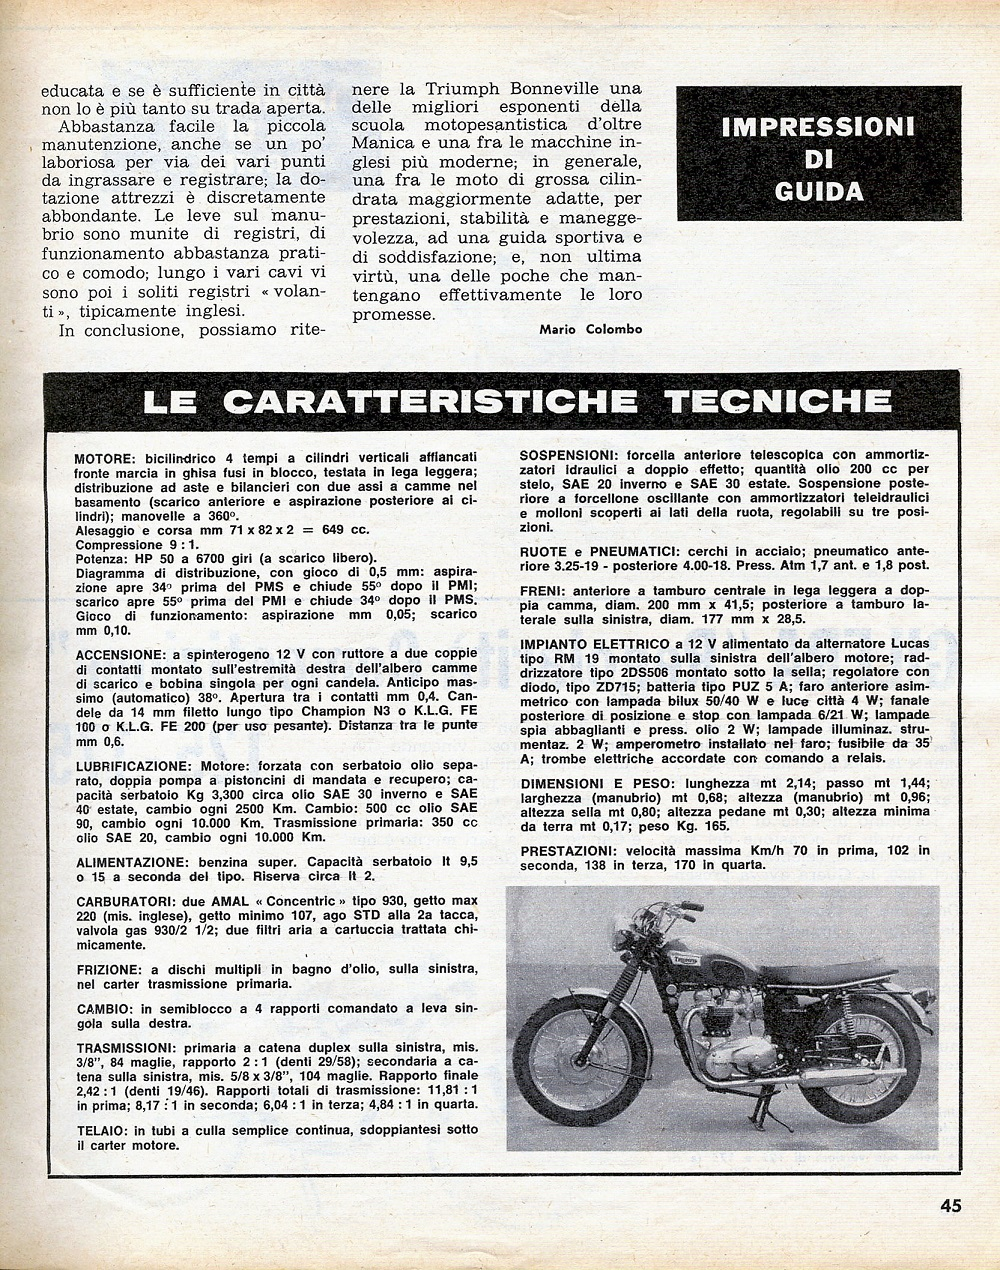 1969 Triumph Bonneville road test. 12.jpg